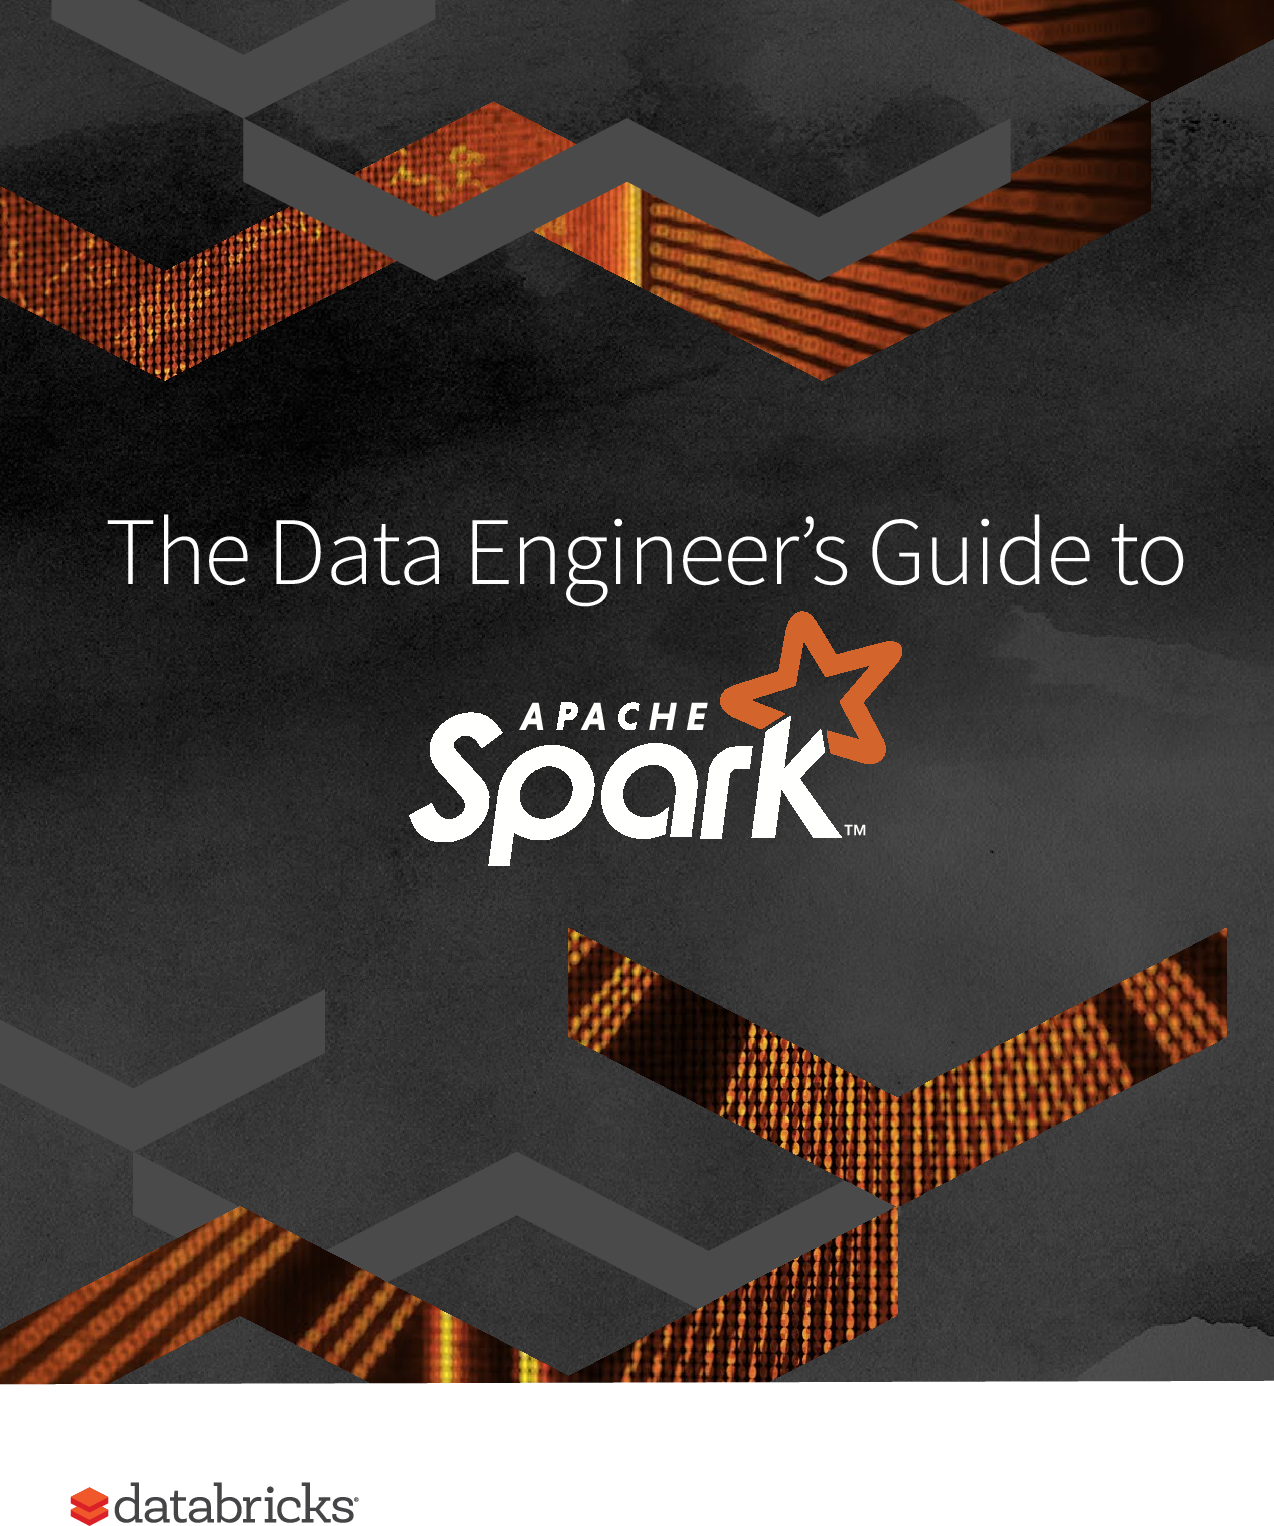 The Data Engineers Guide to Apache Spark